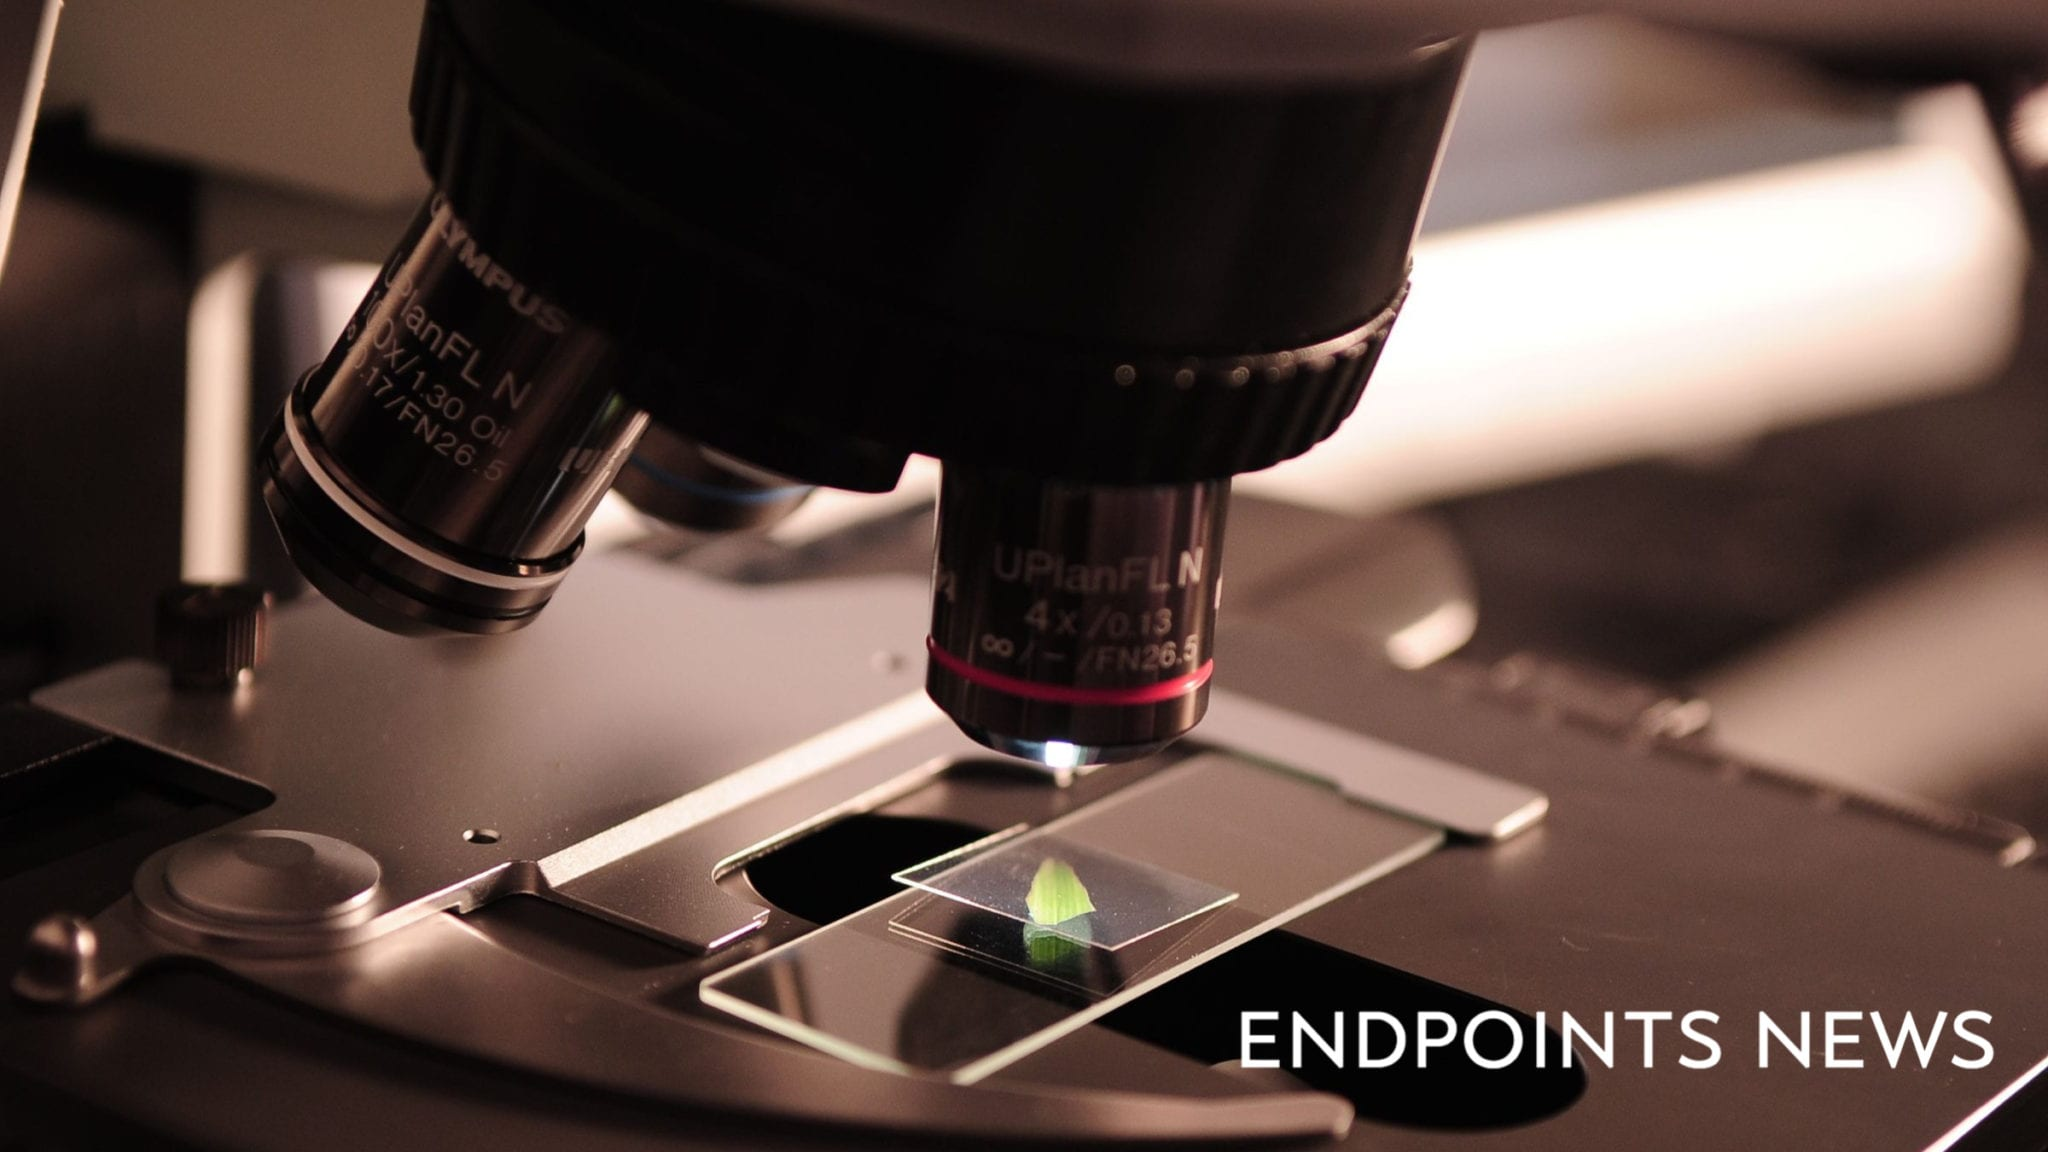 endpts.com - John Carroll - - GSK punts a failed cardio drug to a biotech startup - which has a new development strategy in mind